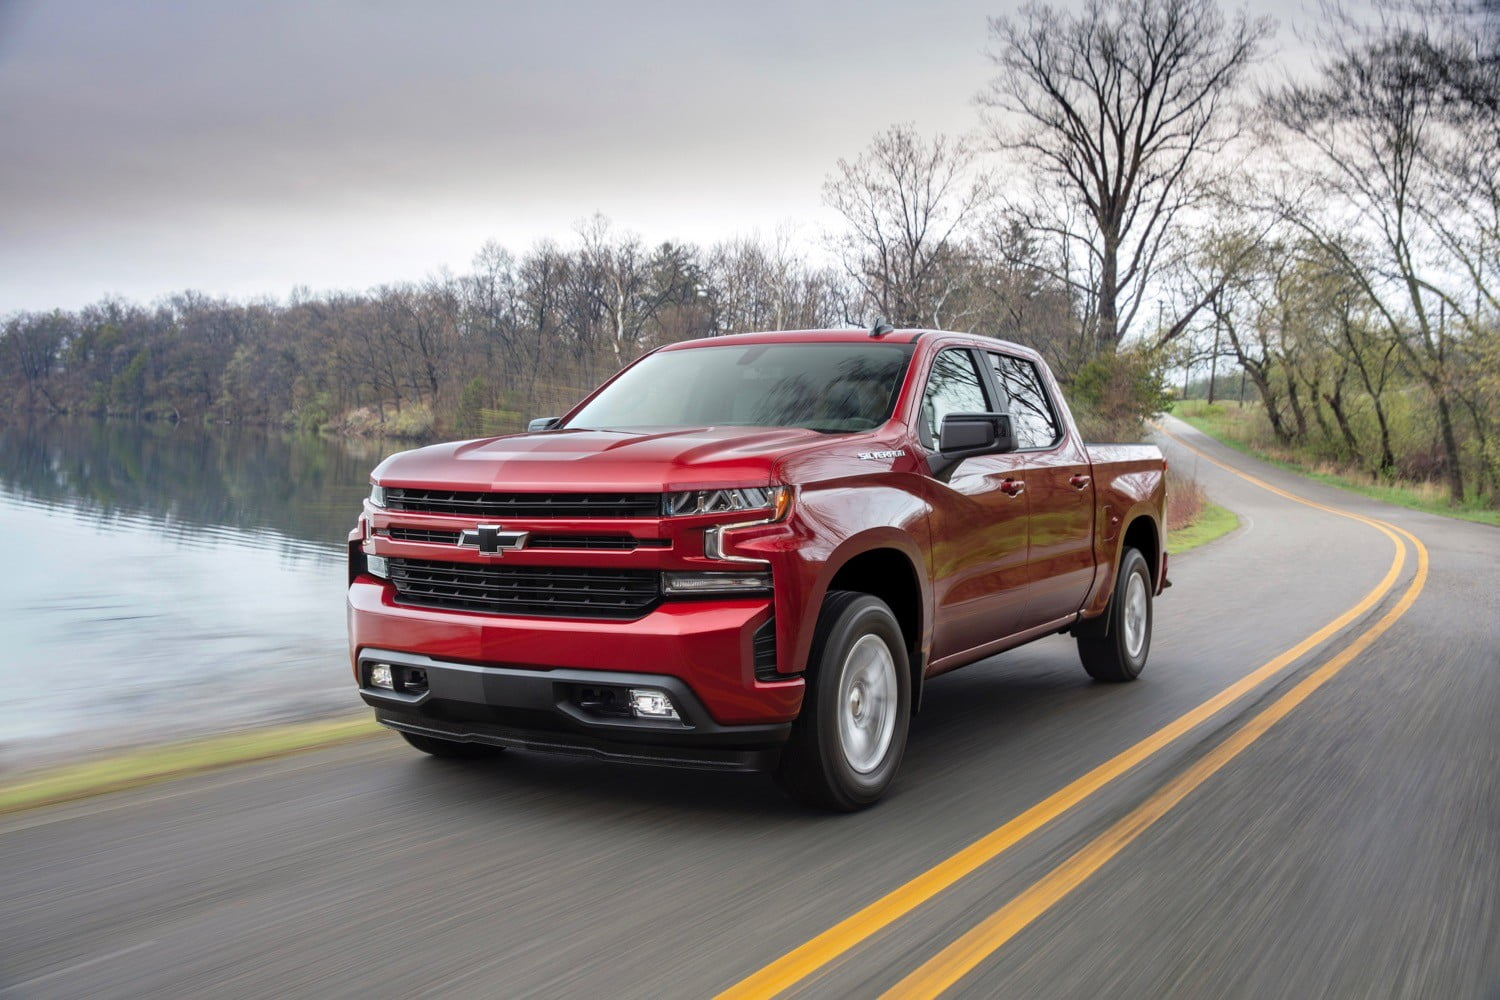 2019 Chevrolet Silverado Gets Serious About Mpg With New Four Cylinder Engine